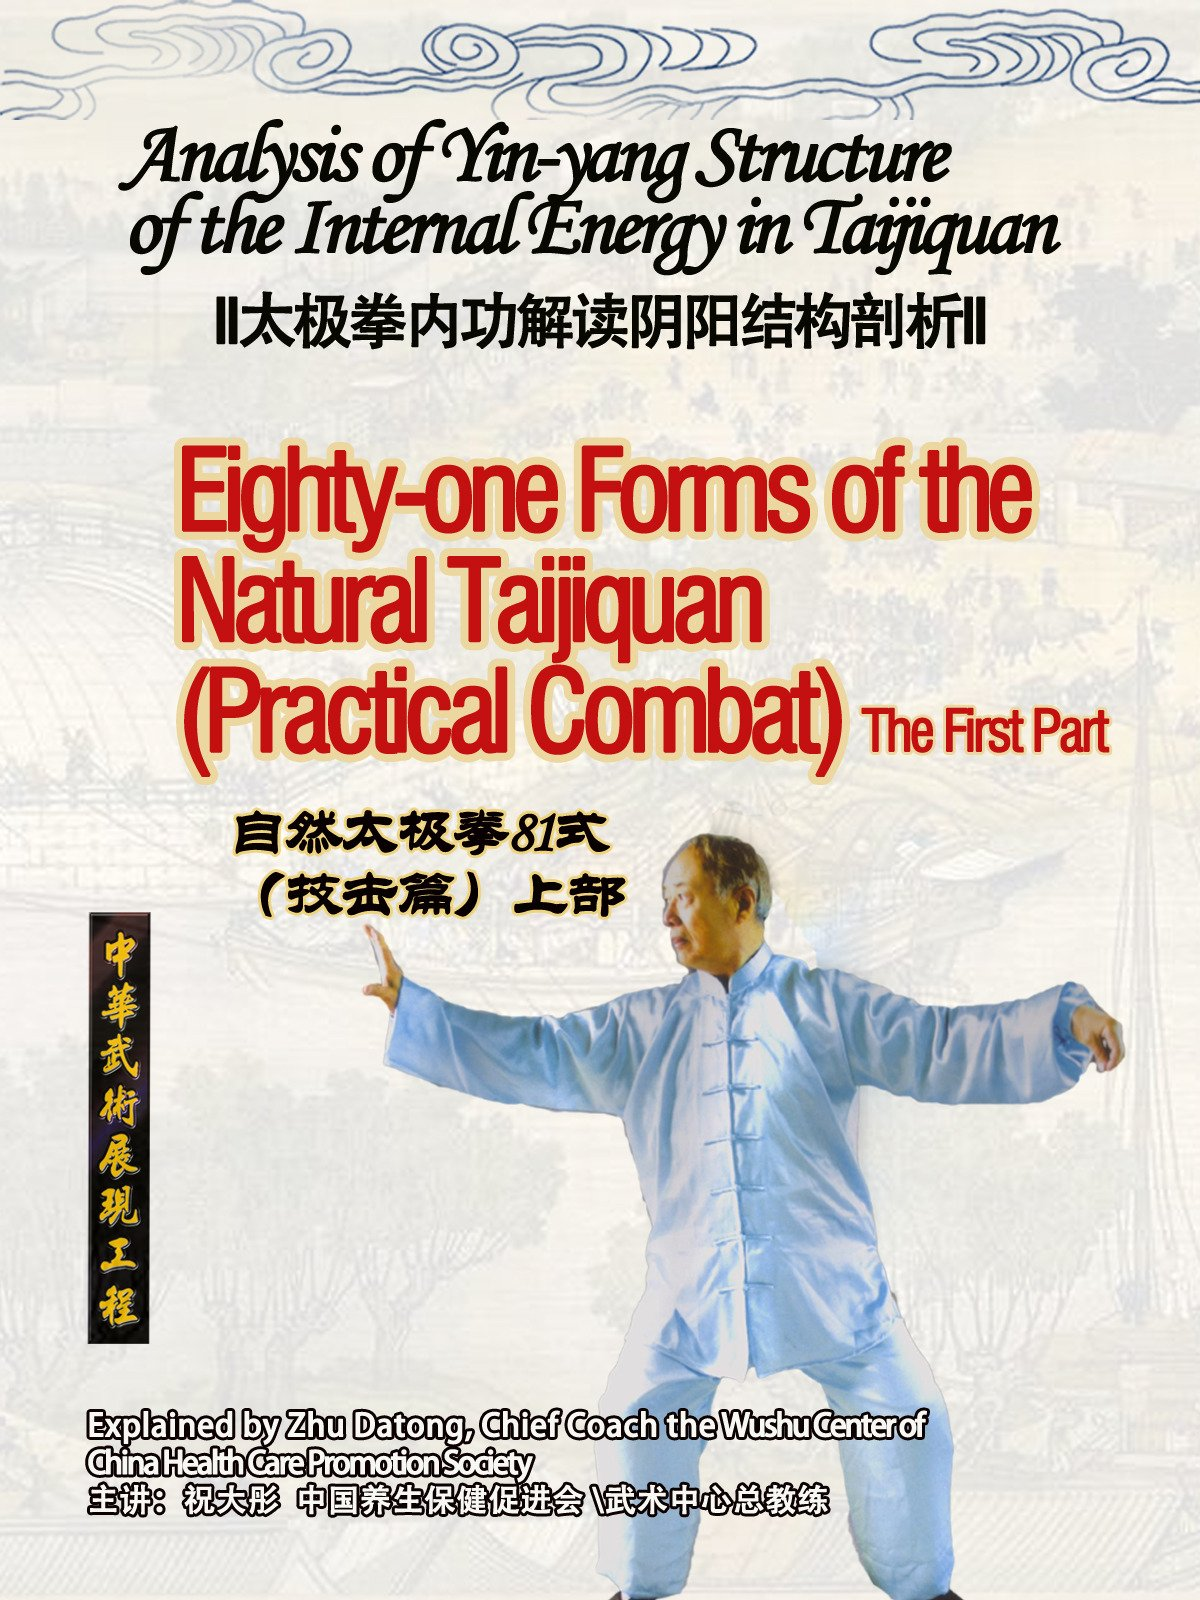 Analysis of Yin-yang Structure of the Internal Energy in Taijiquan-Eighty-one Forms of the Natural Taijiquan (Practical Combat) The First Part